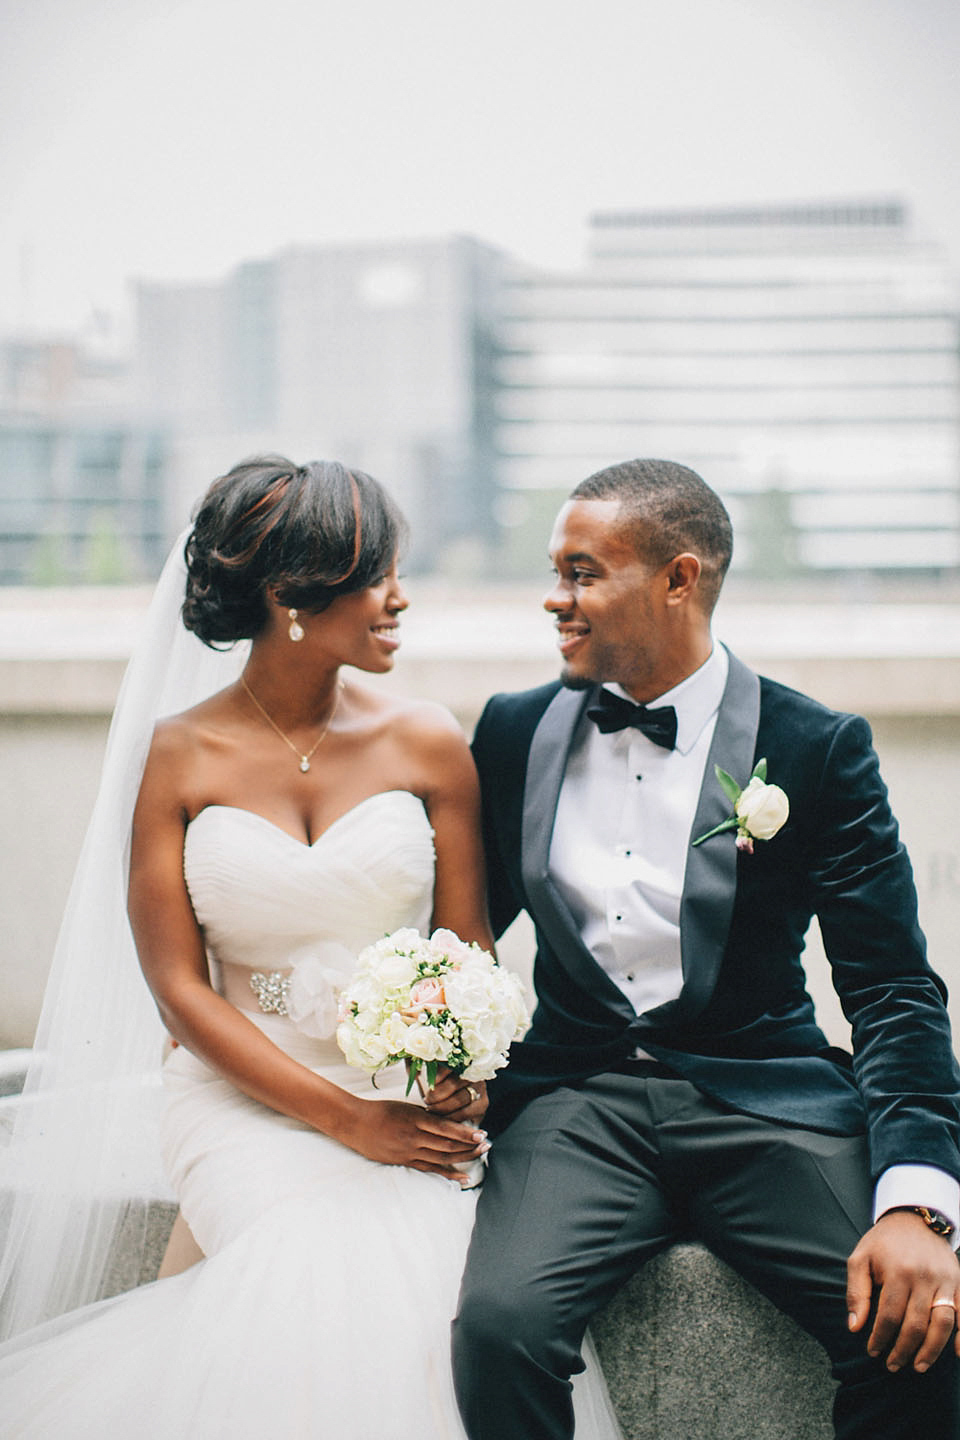 An Essense of Australia Gown for a Caribbean Nigerian Fusion Wedding in London